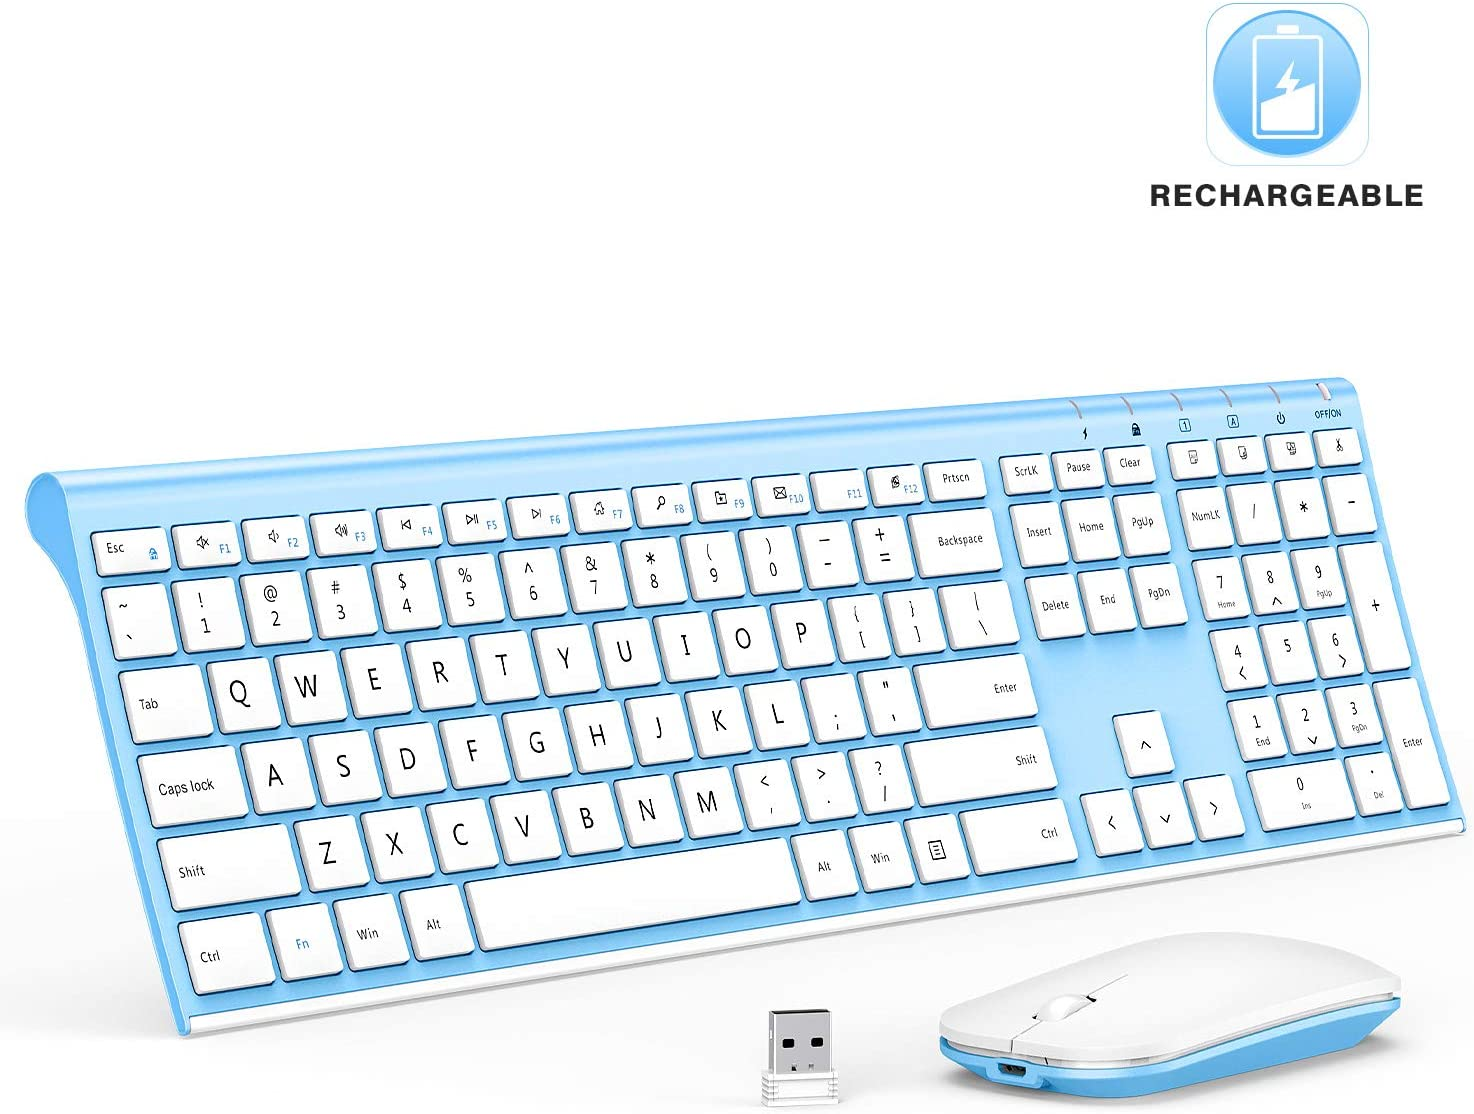 Compact Mouse Whisper-Quiet,Long Range Wireless Connection Full Sized Keyboard Color : Blue Ultra Slim Wireless Keyboard and Mouse Combo for Windows 2.4 GHz Wireless